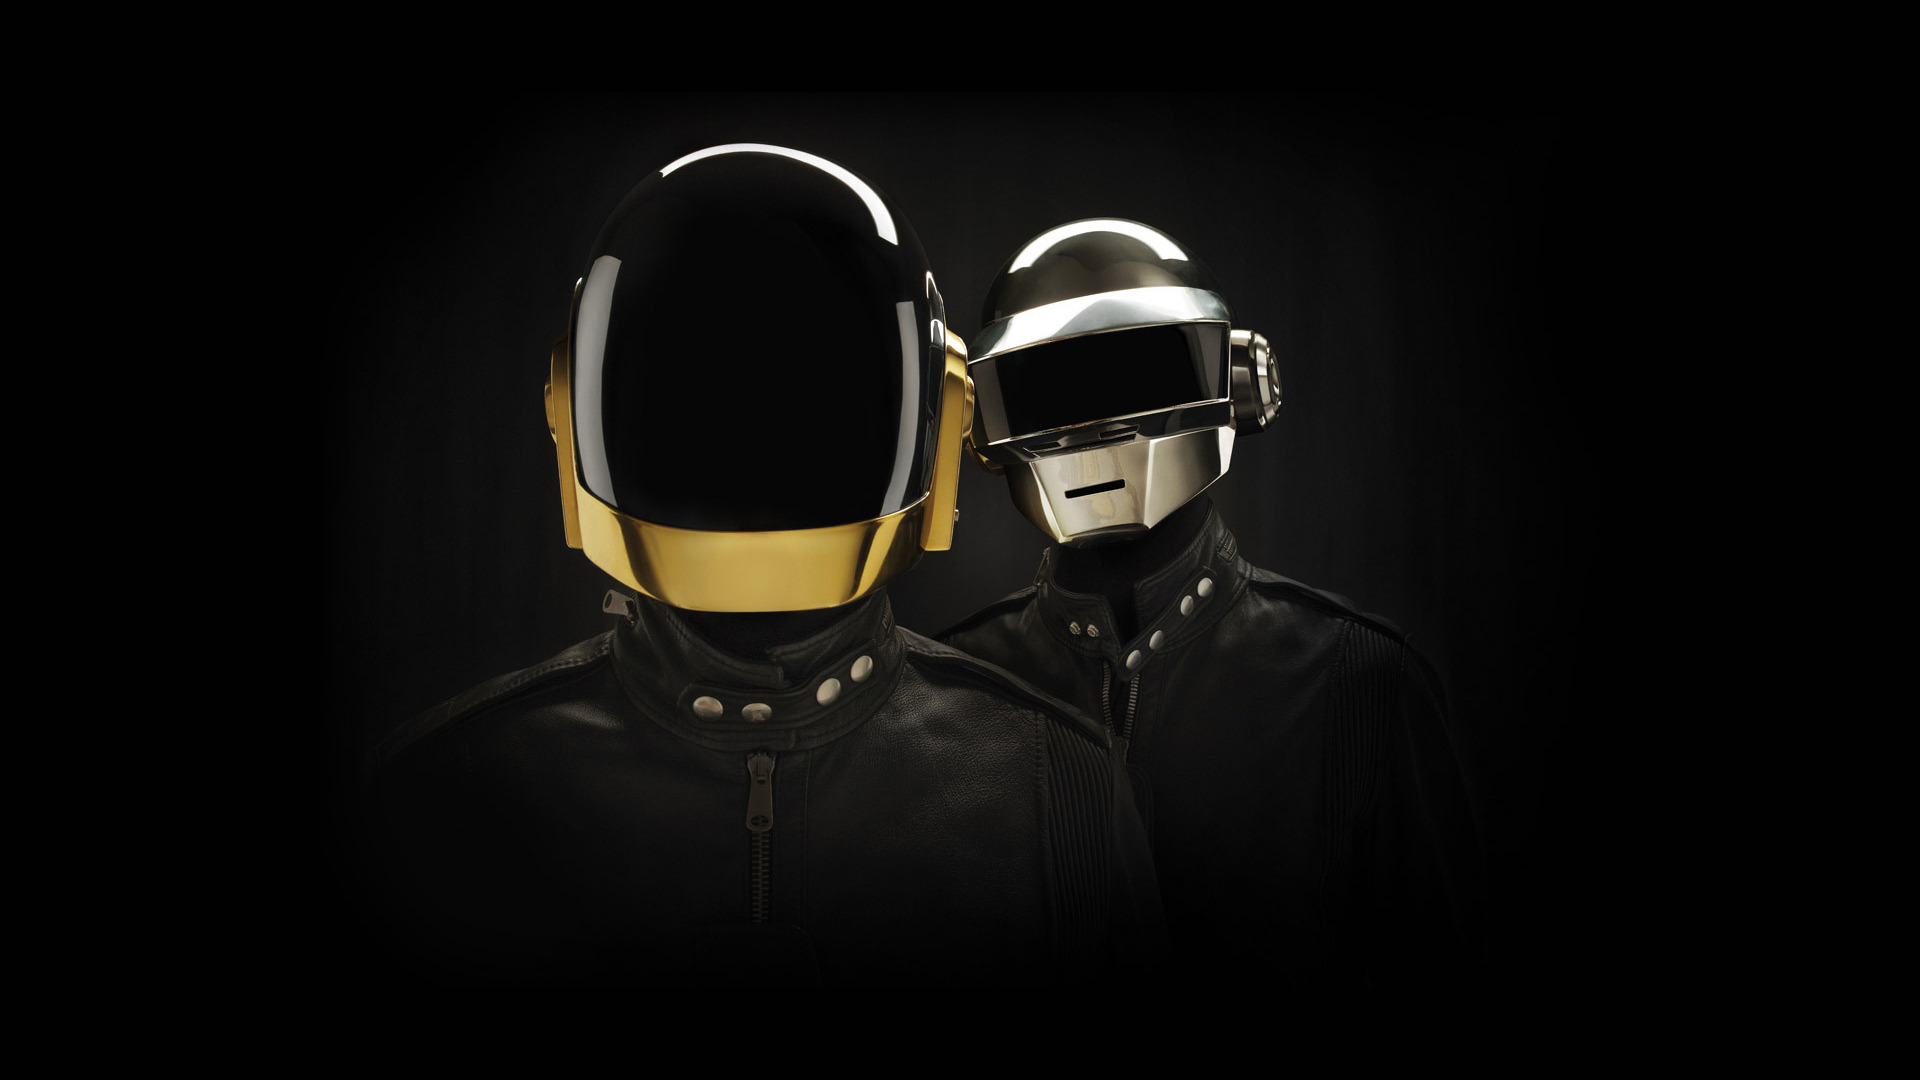 Daft Punk Backgrounds - WallpaperSafari